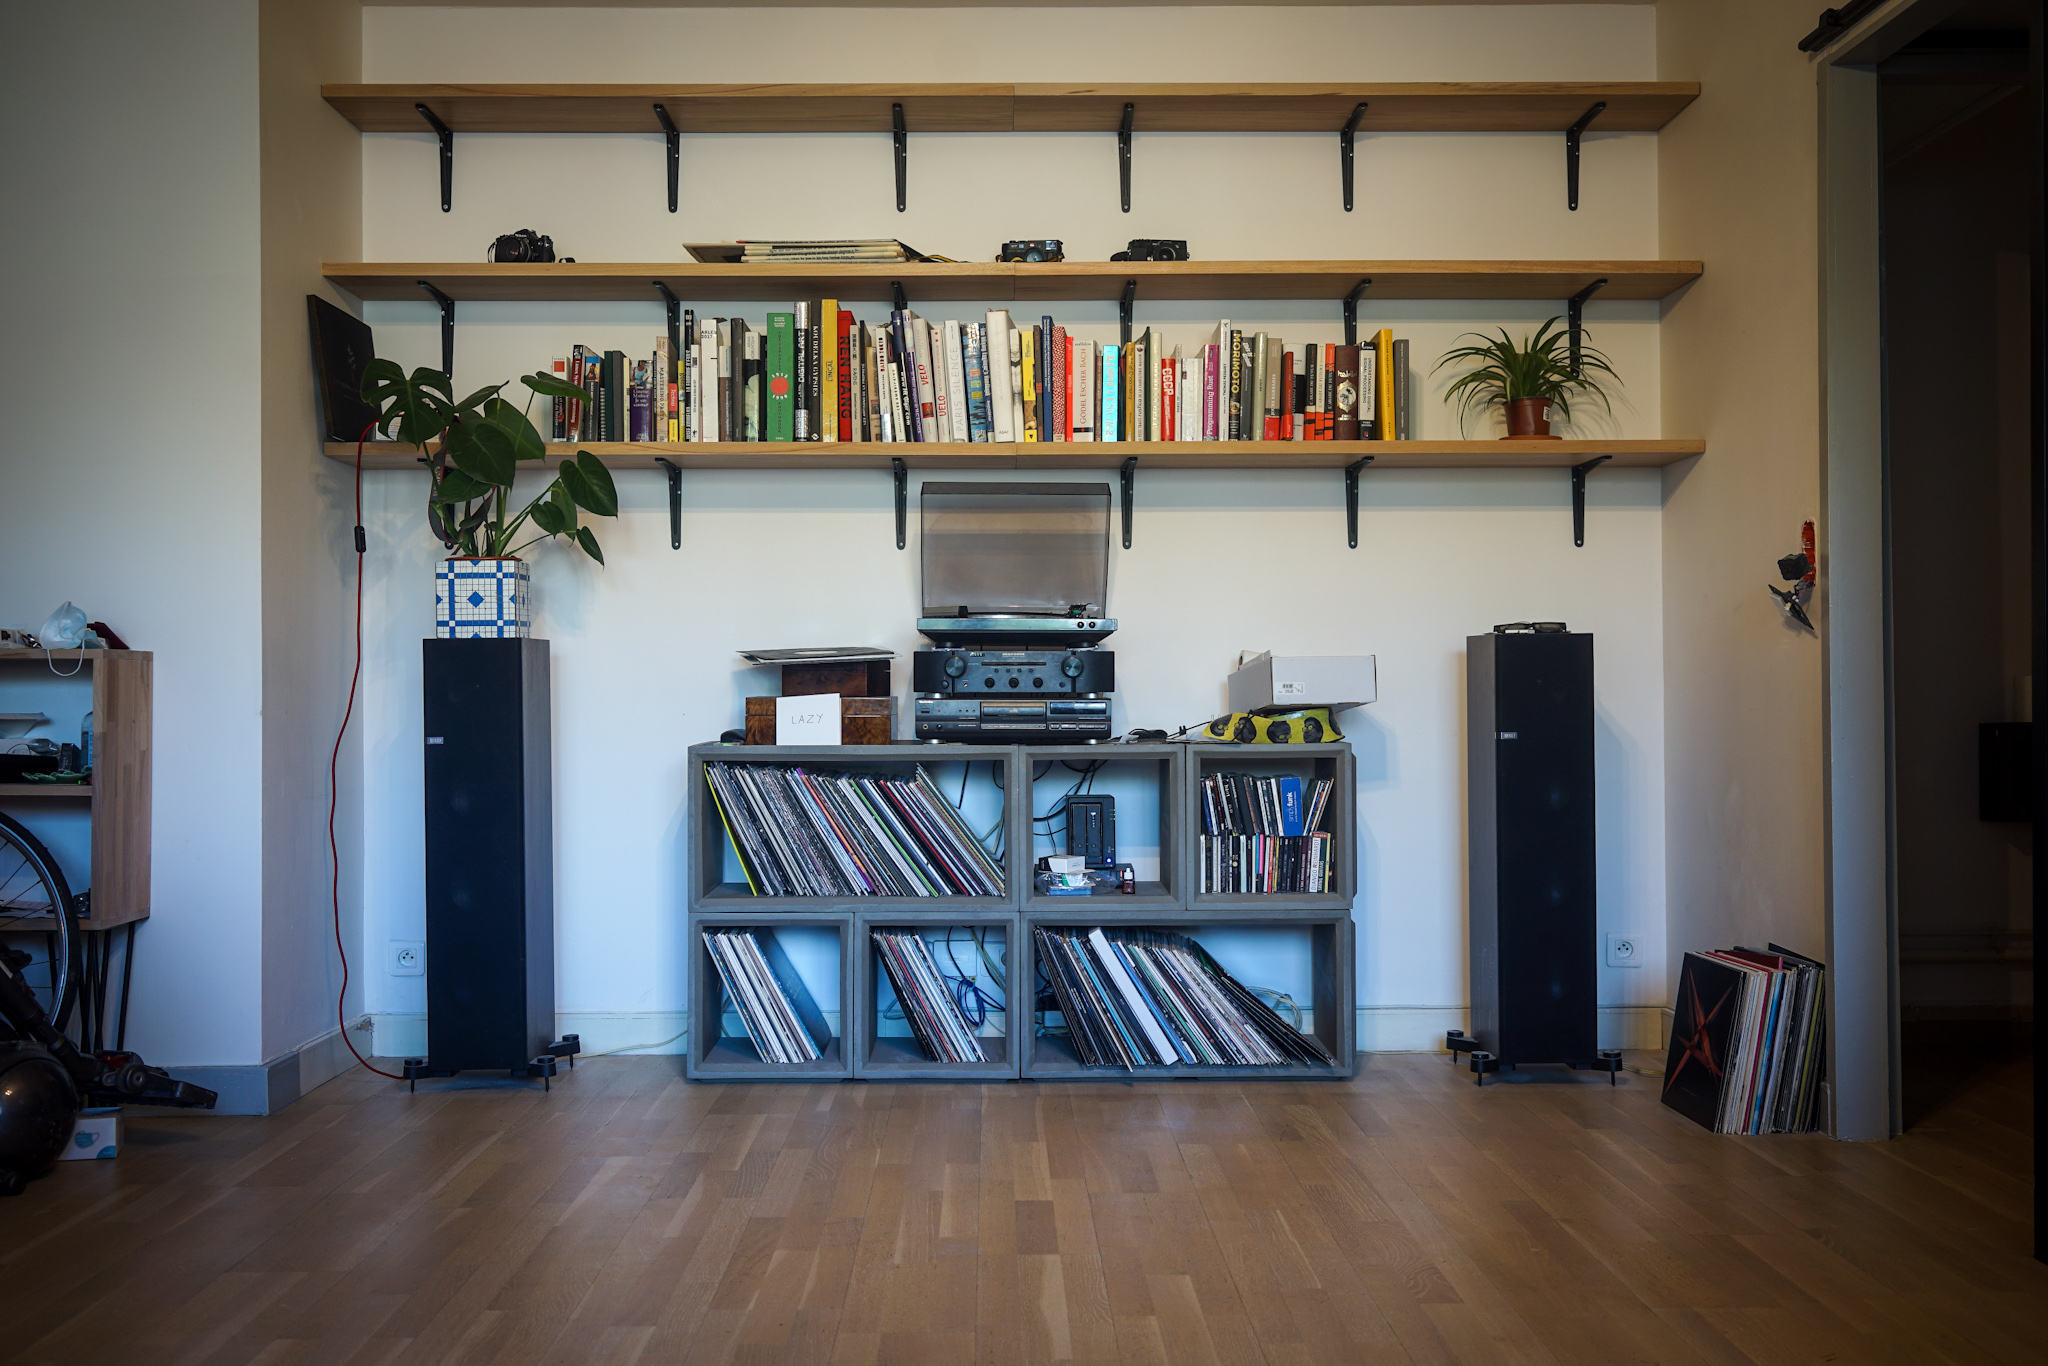 A 2/3rd empty bookshelf, a hi-fi system and my record collection